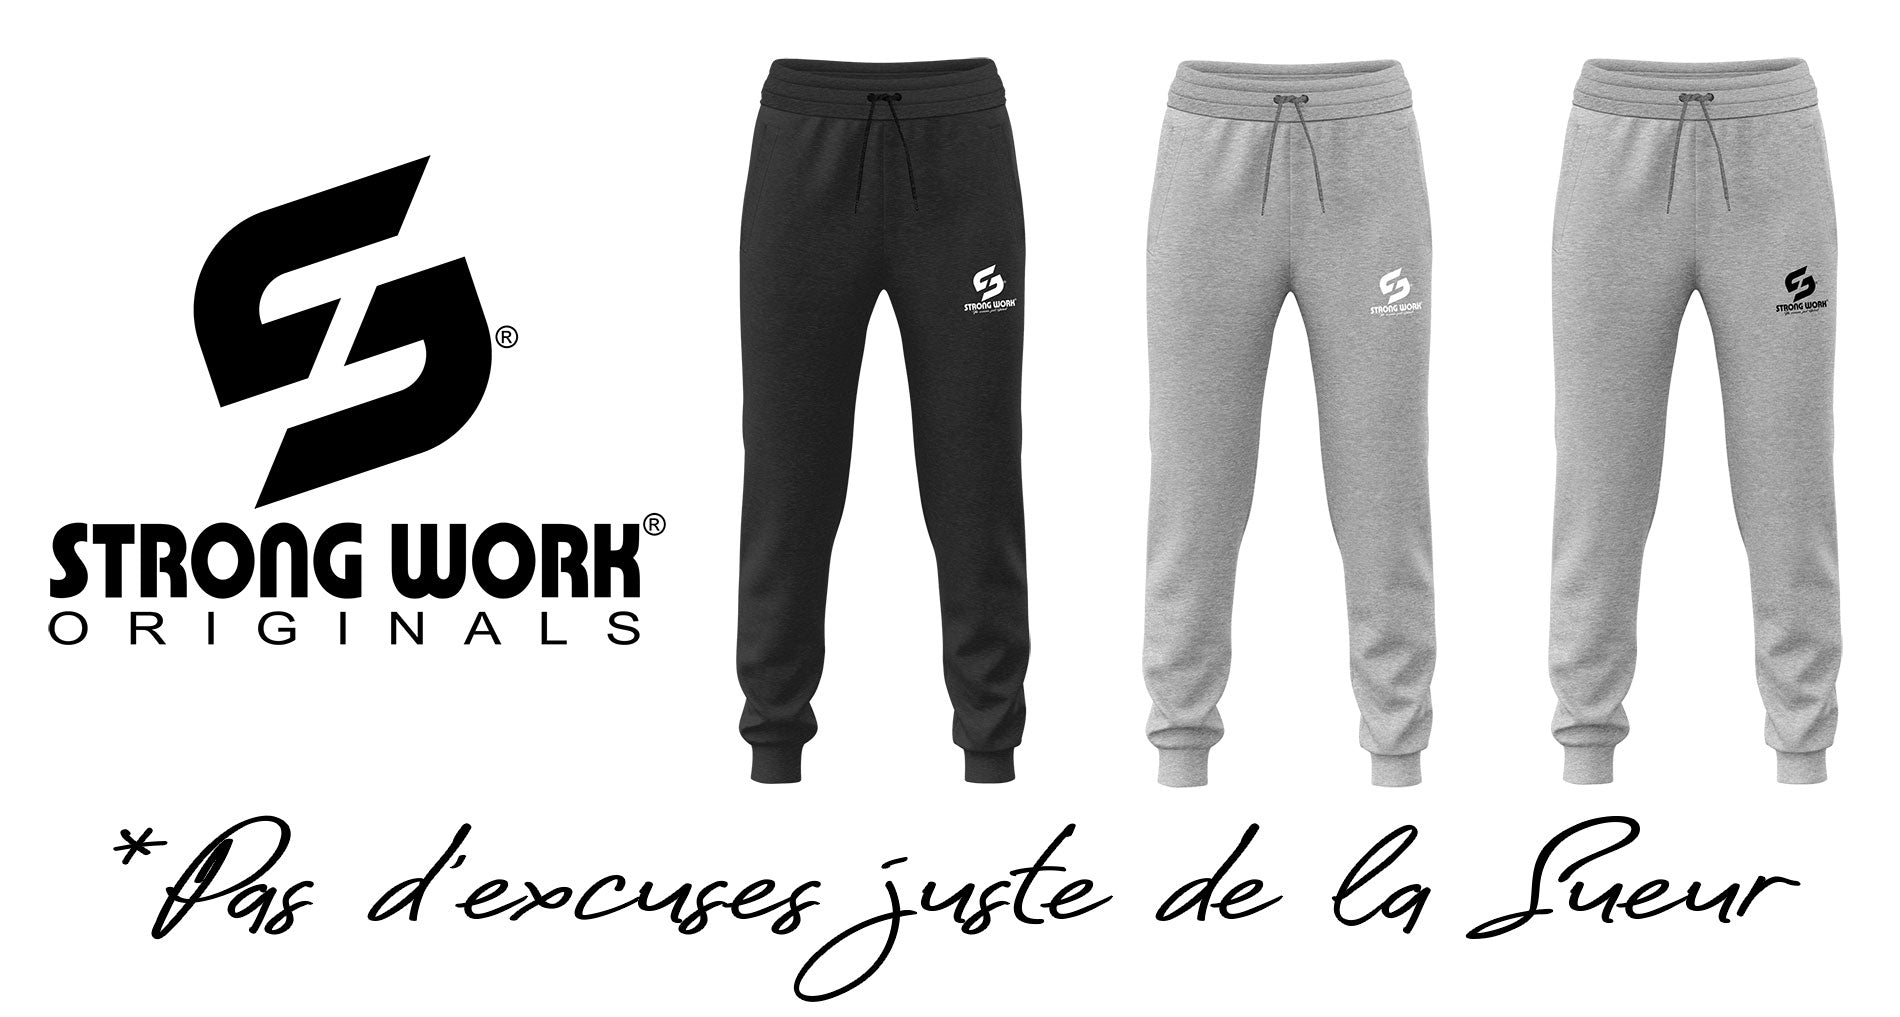 JOGGINGS STRONG WORK ORIGINALS POUR FEMME - STRONG WORK SPORTSWEAR - NO EXCUSES JUST SWEAT